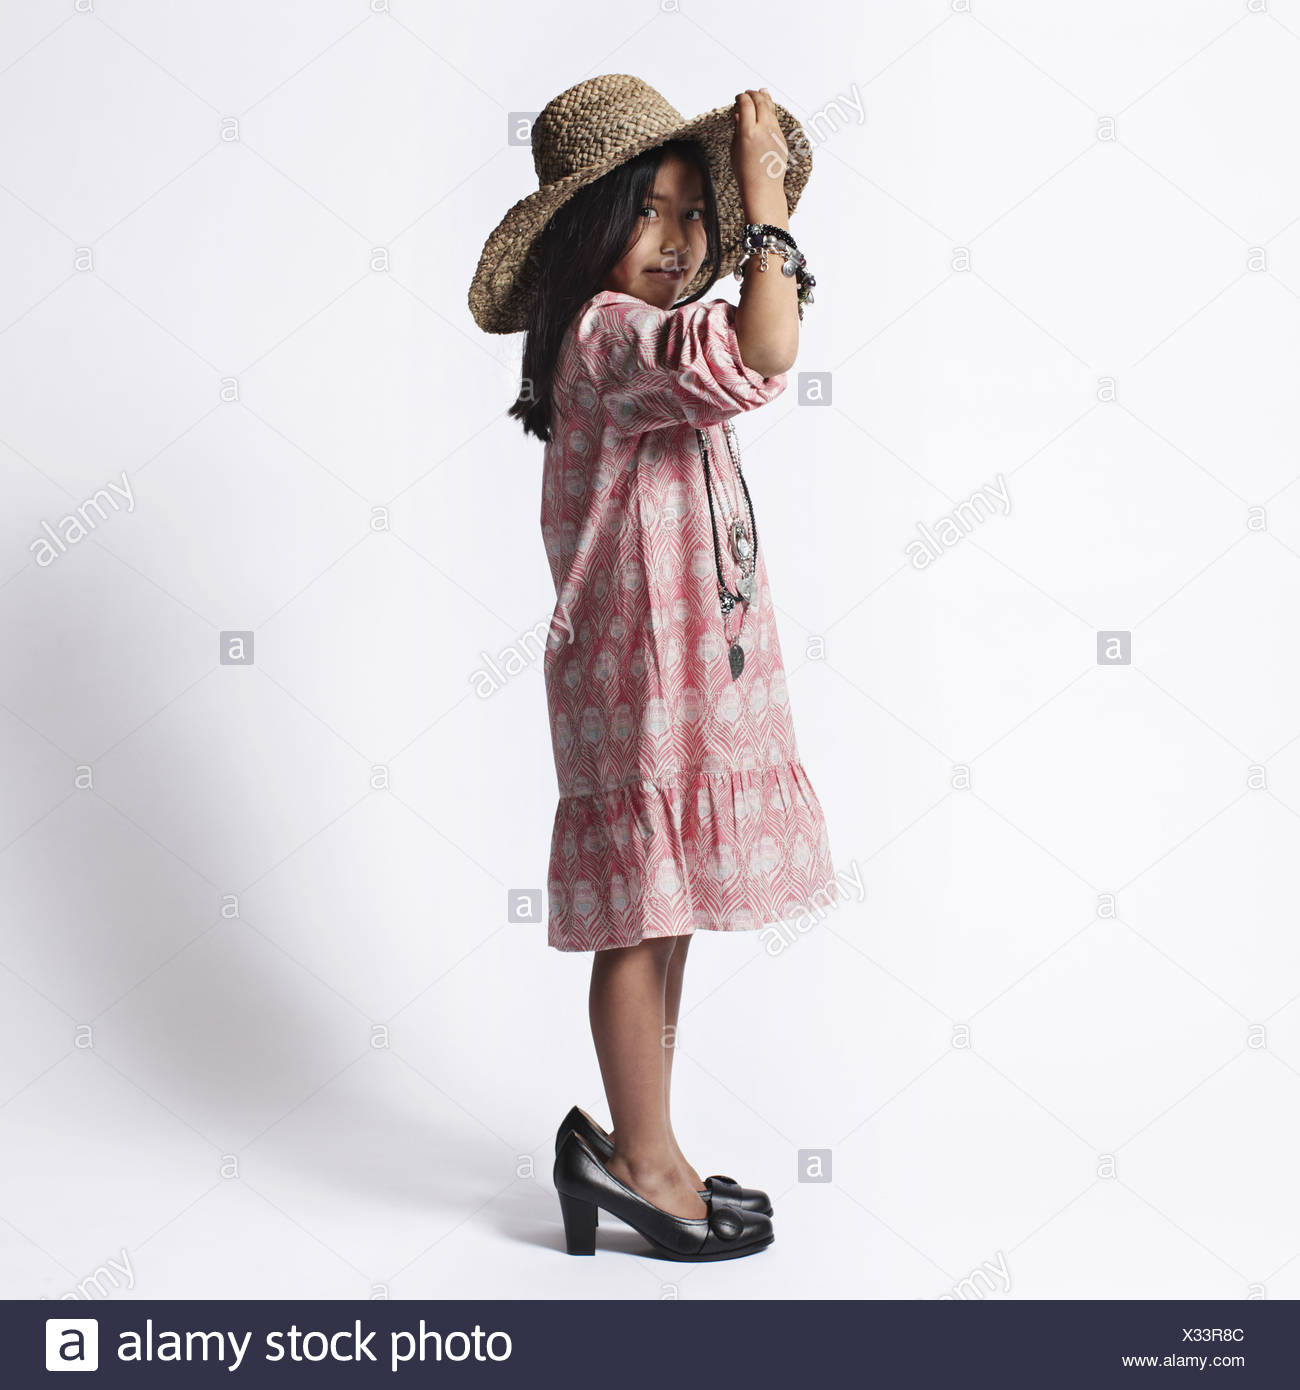 Girl dressing up in mothers shoes - Stock Image